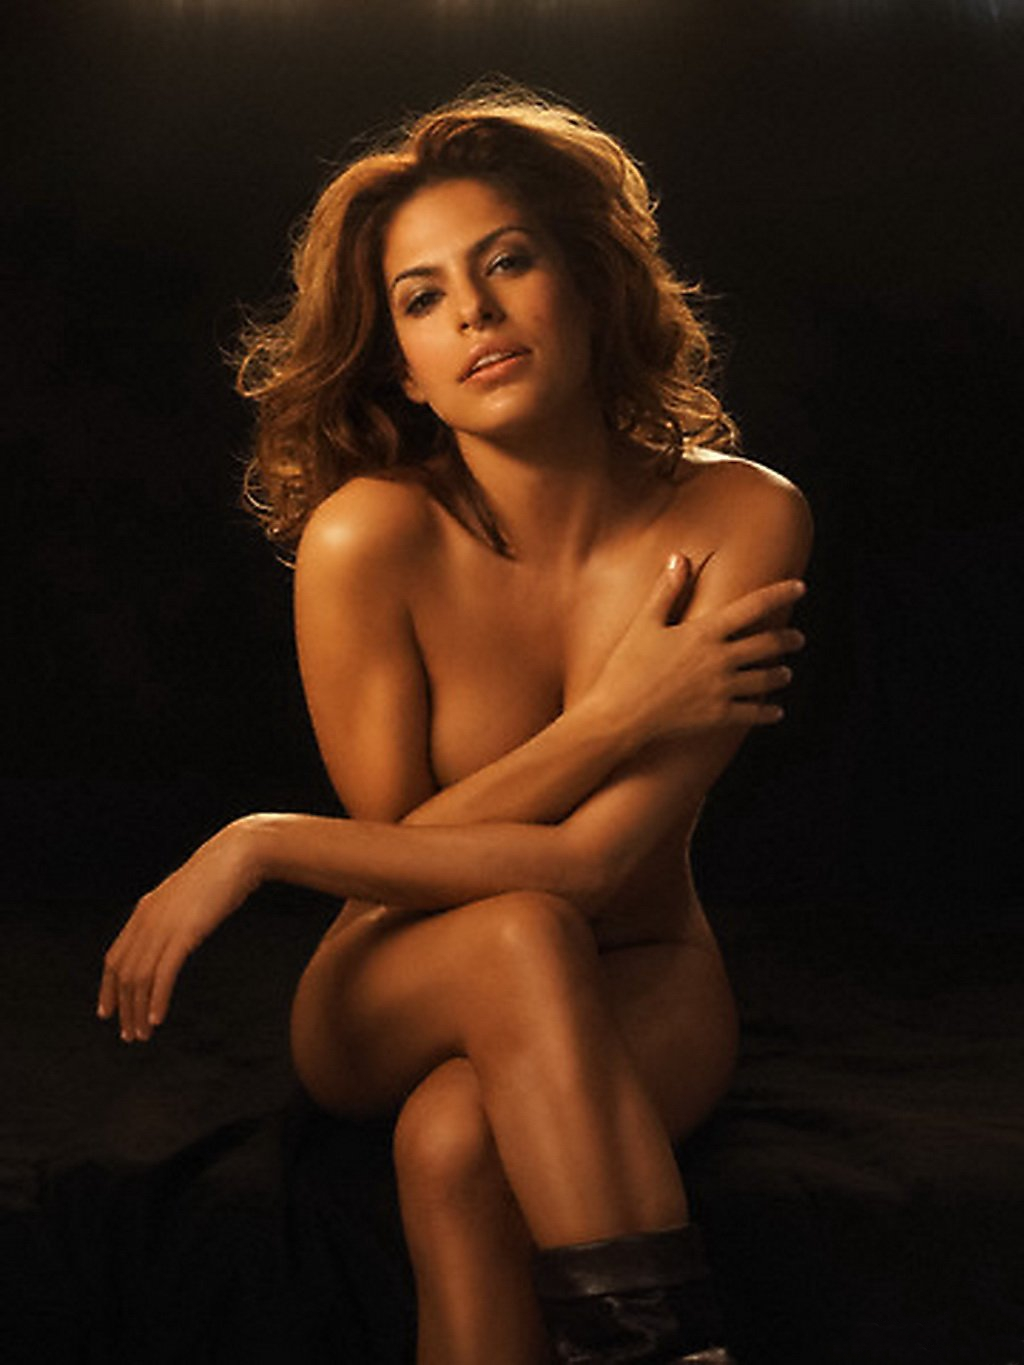 nude-photos-of-eva-mendez